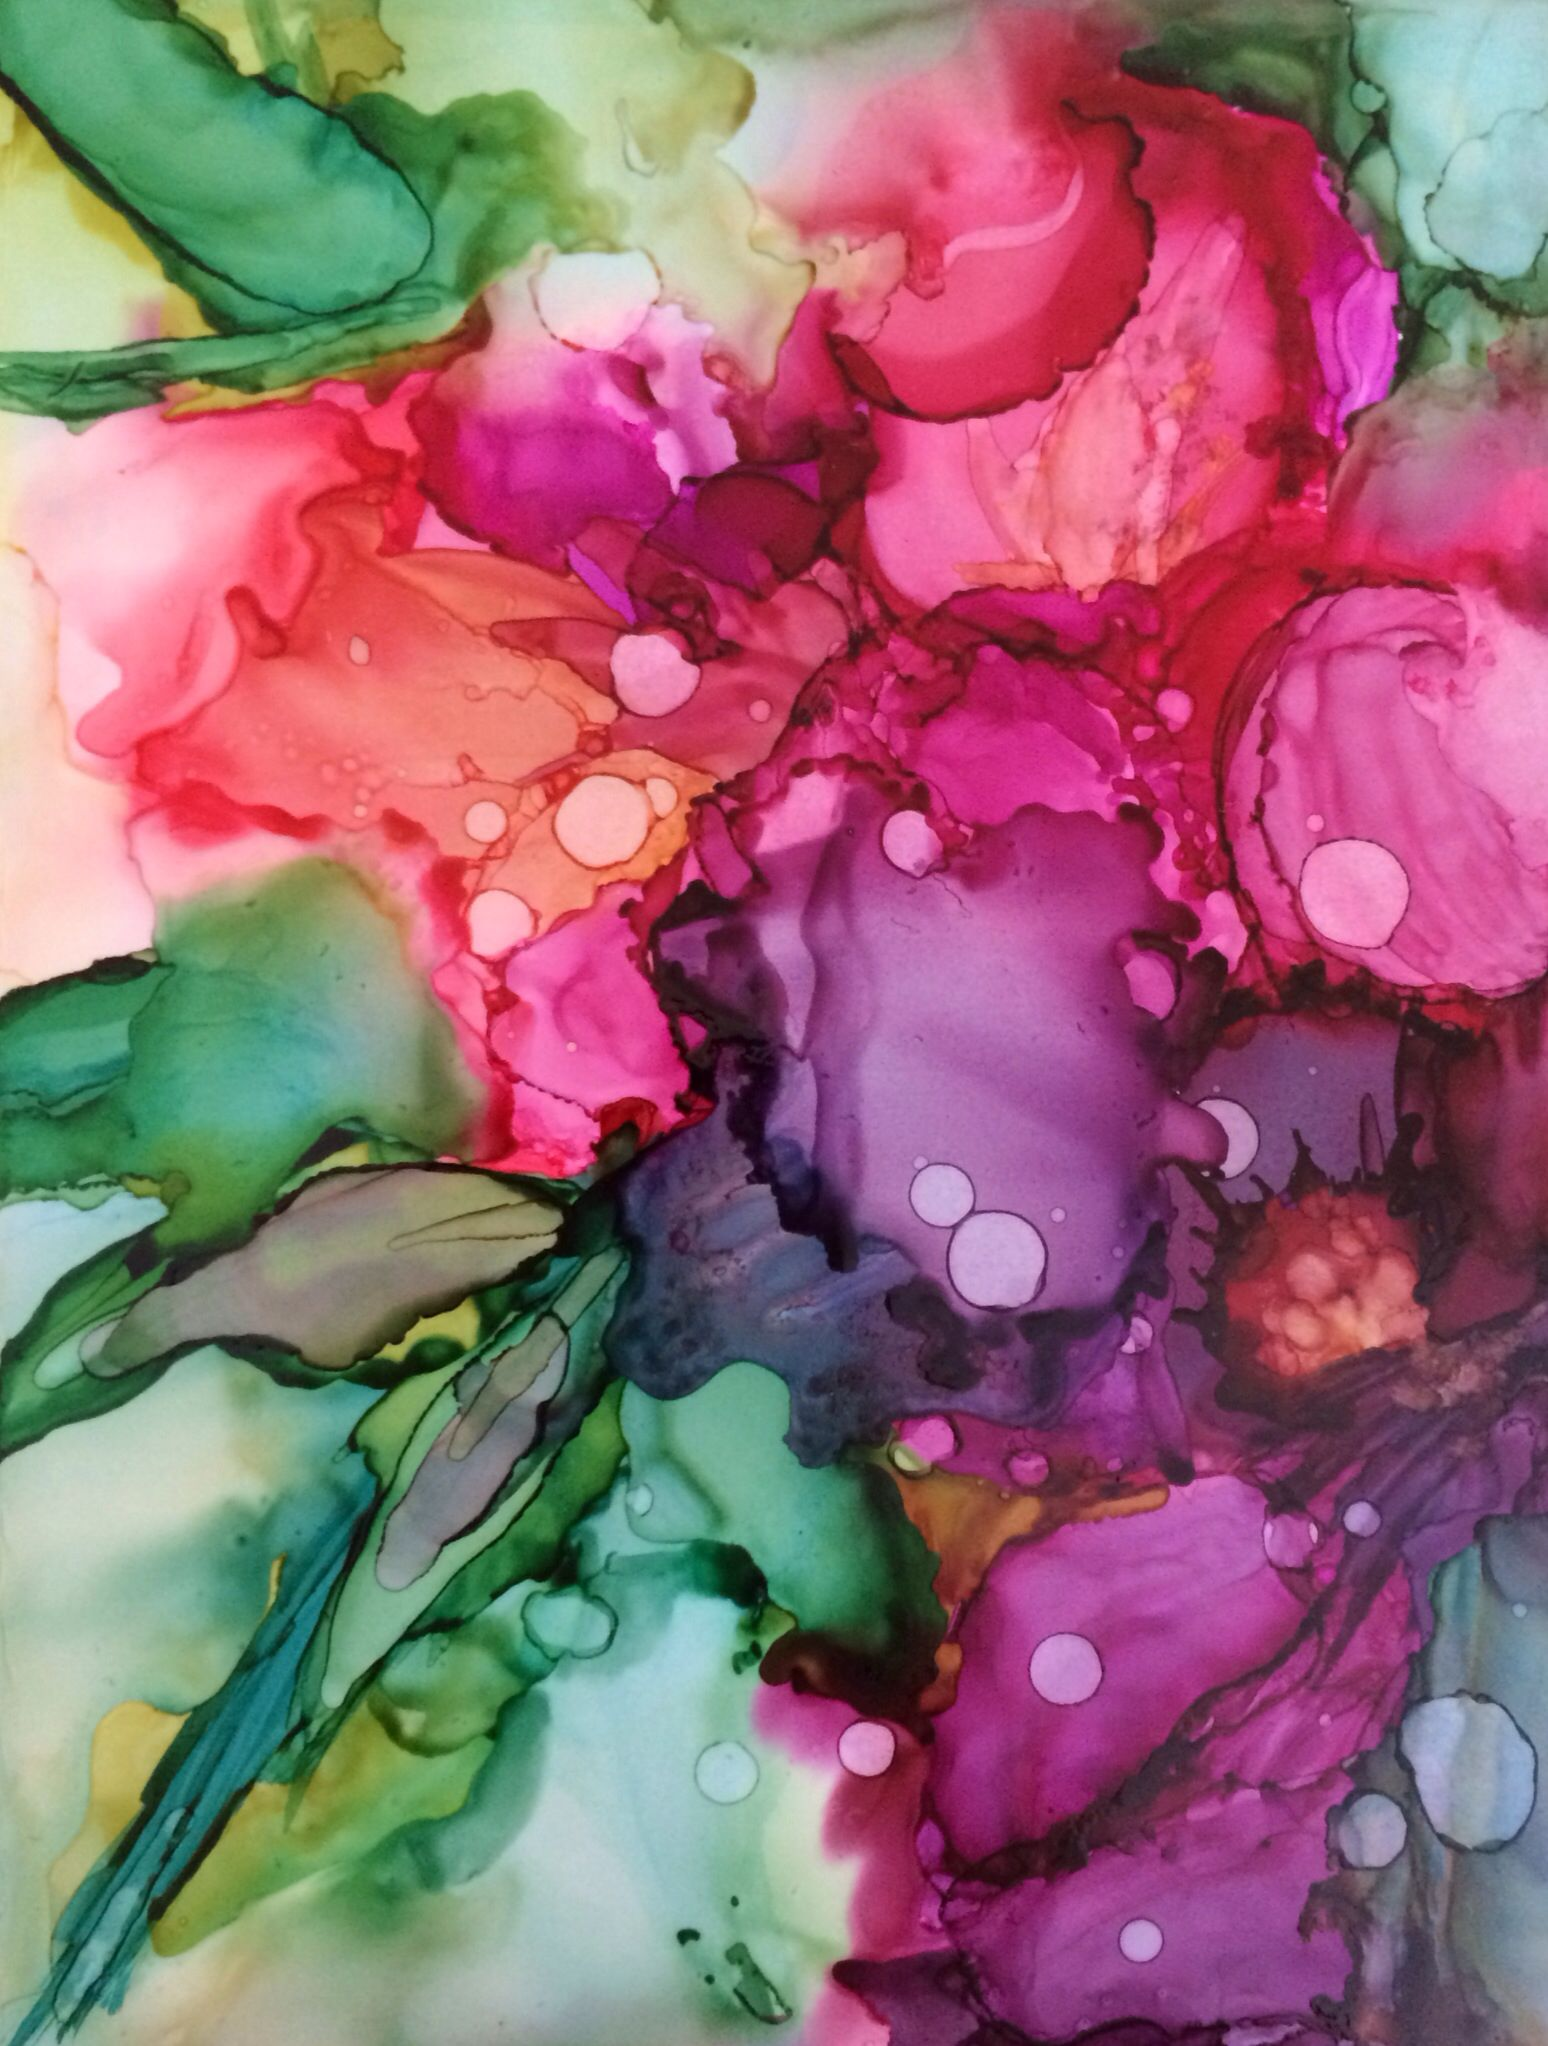 Watercolor artists names - Artist Name Pamella Radwan Medium Used Alcohol Ink Substrate Yupo Size 4 X 6 Artist Comments I Love Flowers Tried To Capture Their Beauty Using This